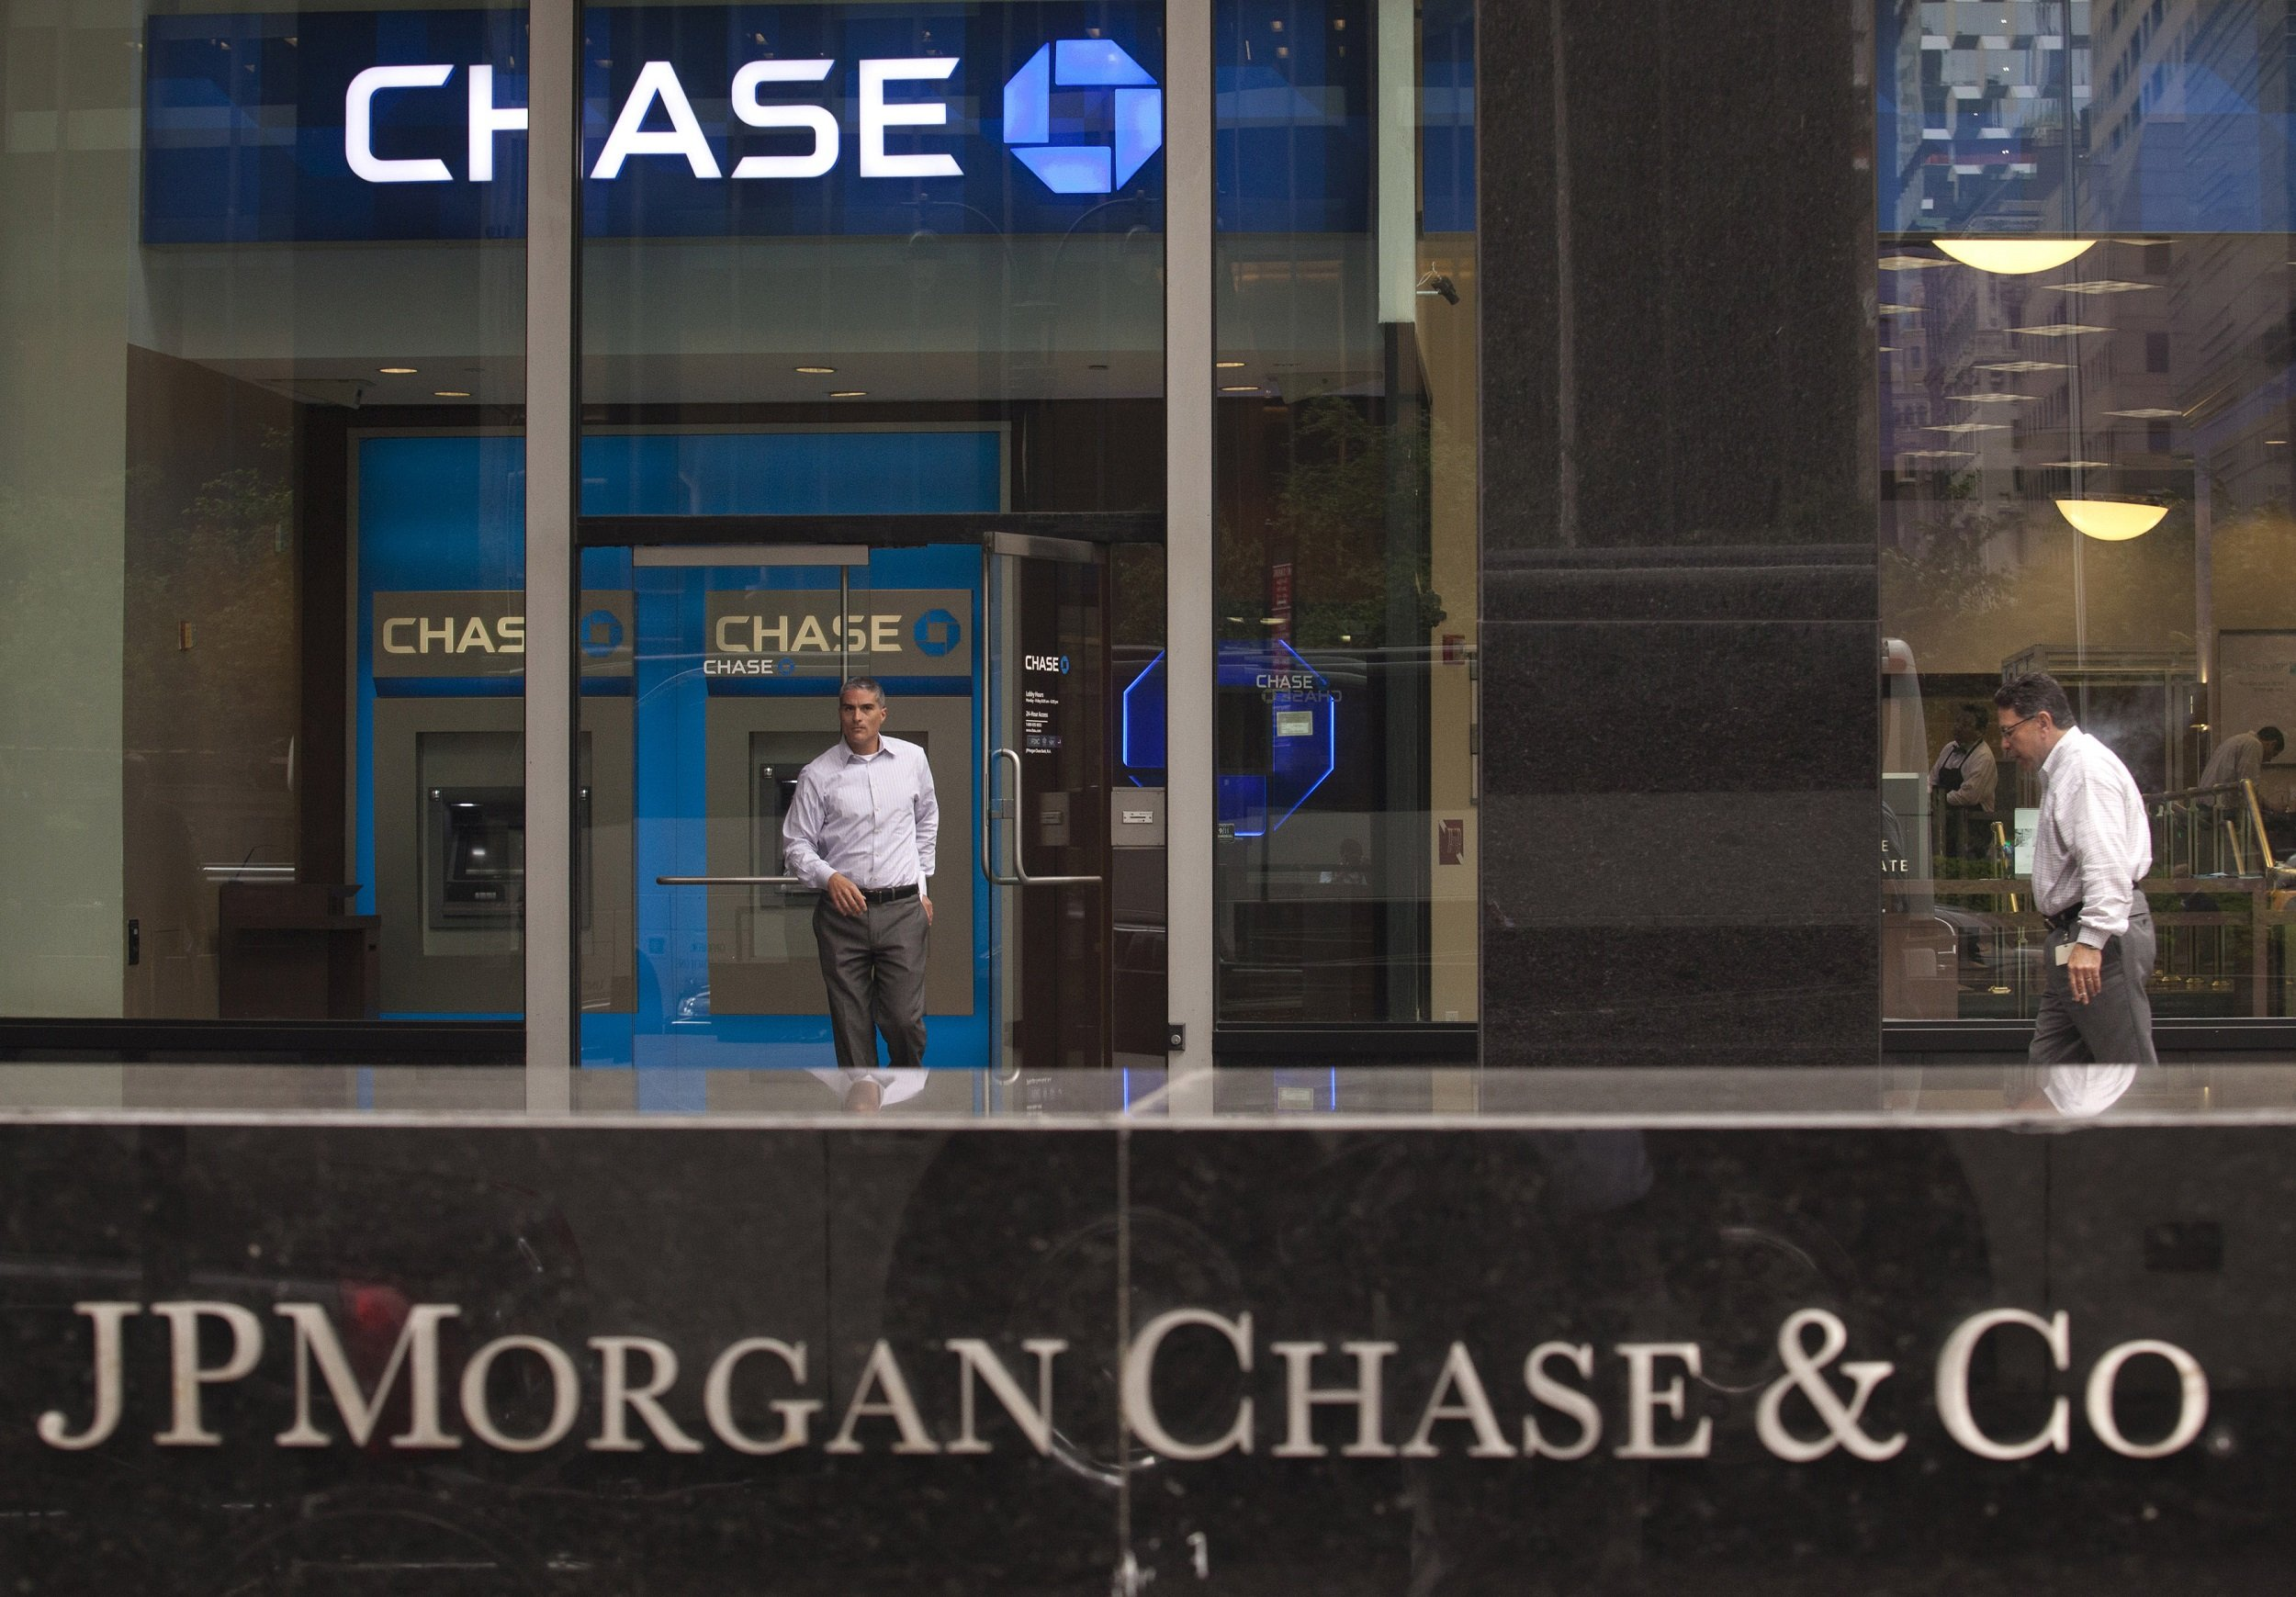 76 Million Accounts Affected by Cyberattack, JPMorgan Says